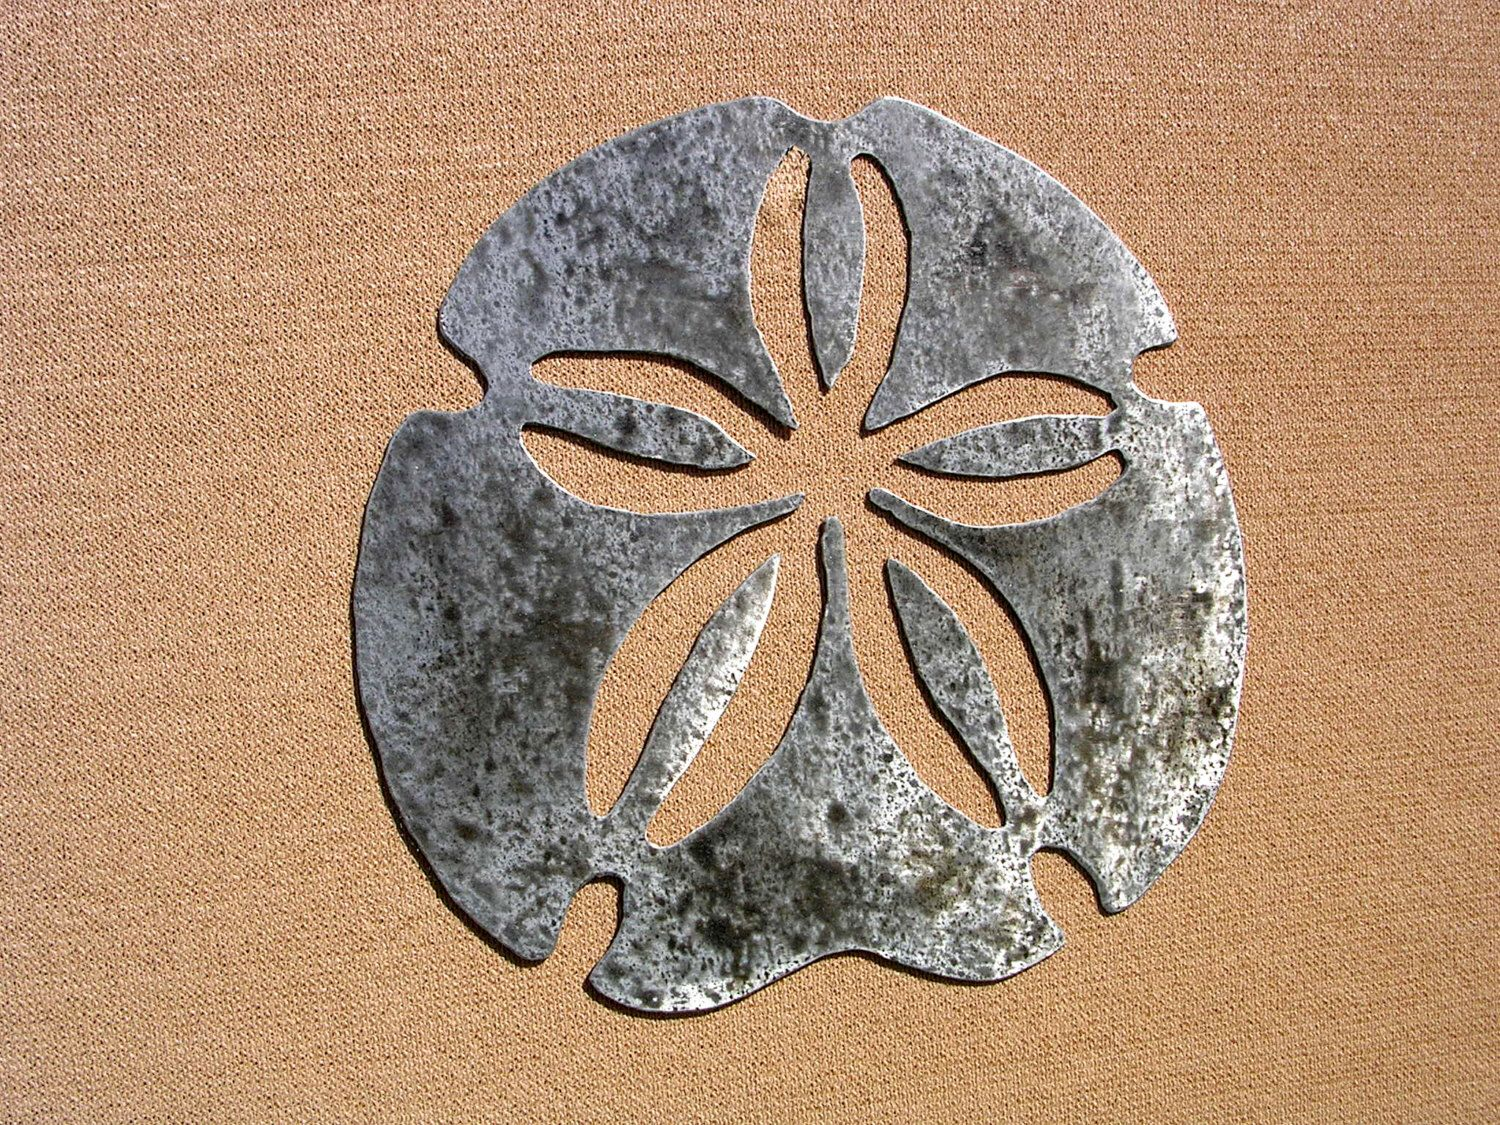 Large Outdoor Metal Wall Art Sand Dollar Art Large Outdoor Metal Wall Art Sculpture Sanddollar